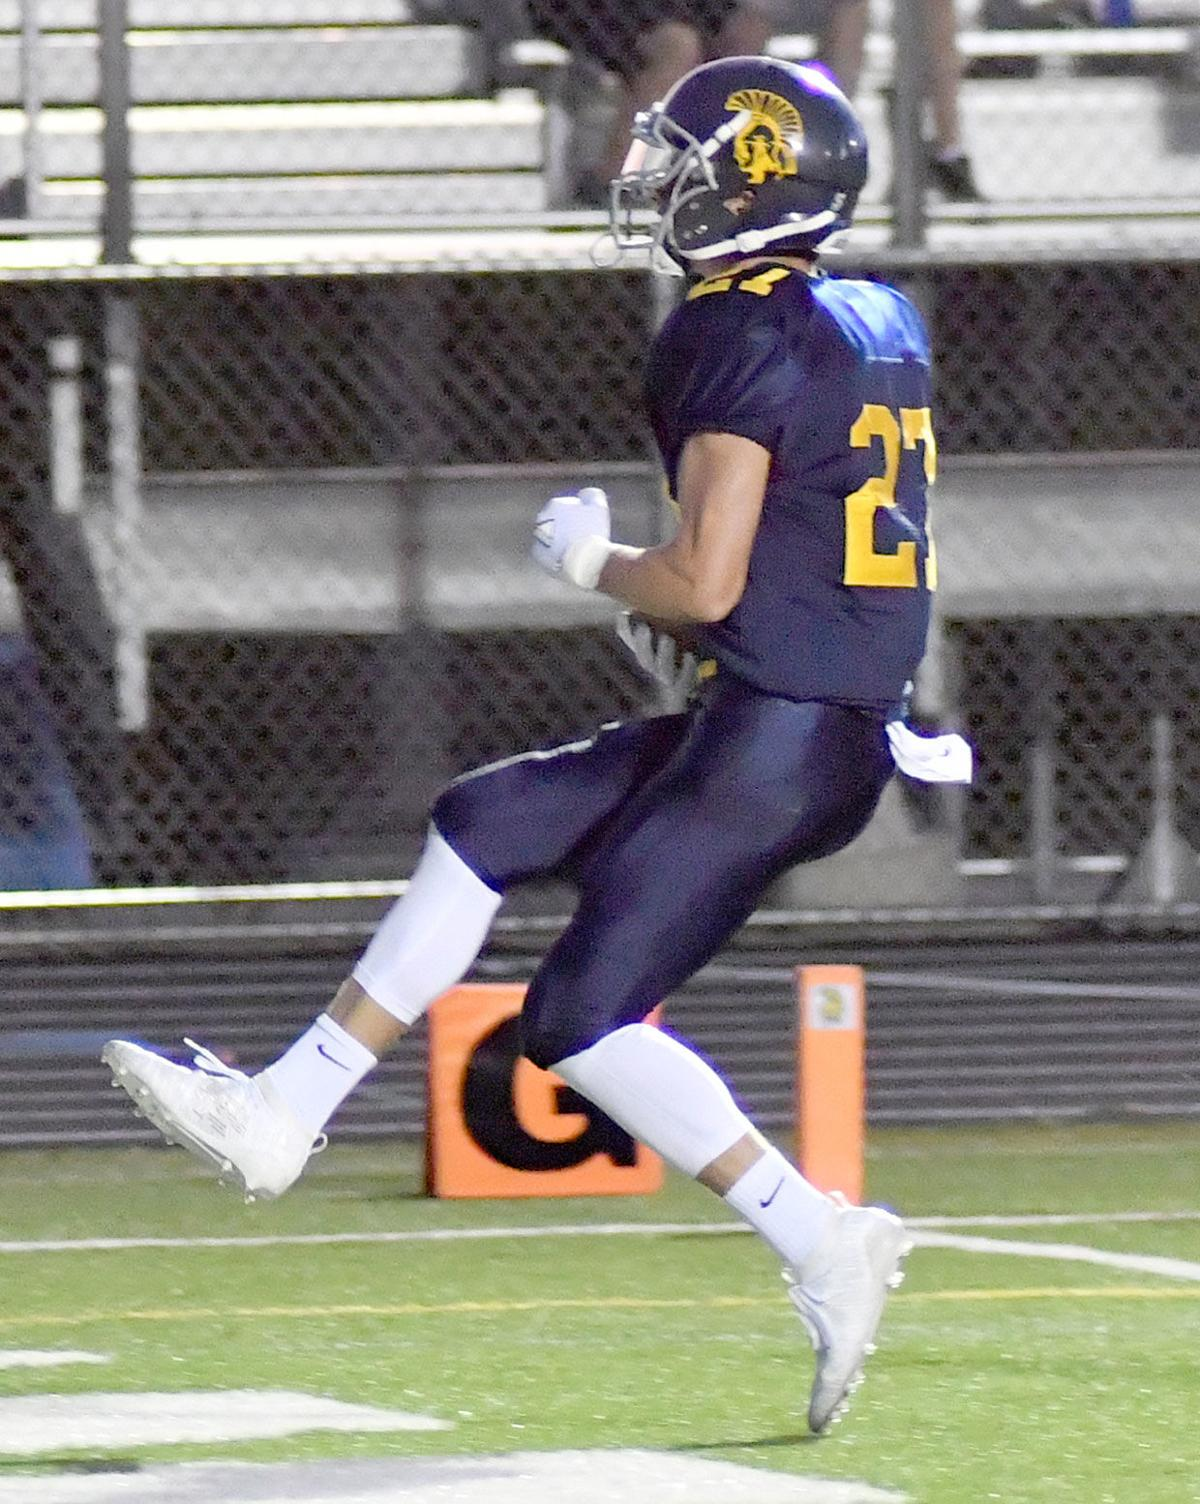 Football: Zephyrs fall to Park's late surge 13-10